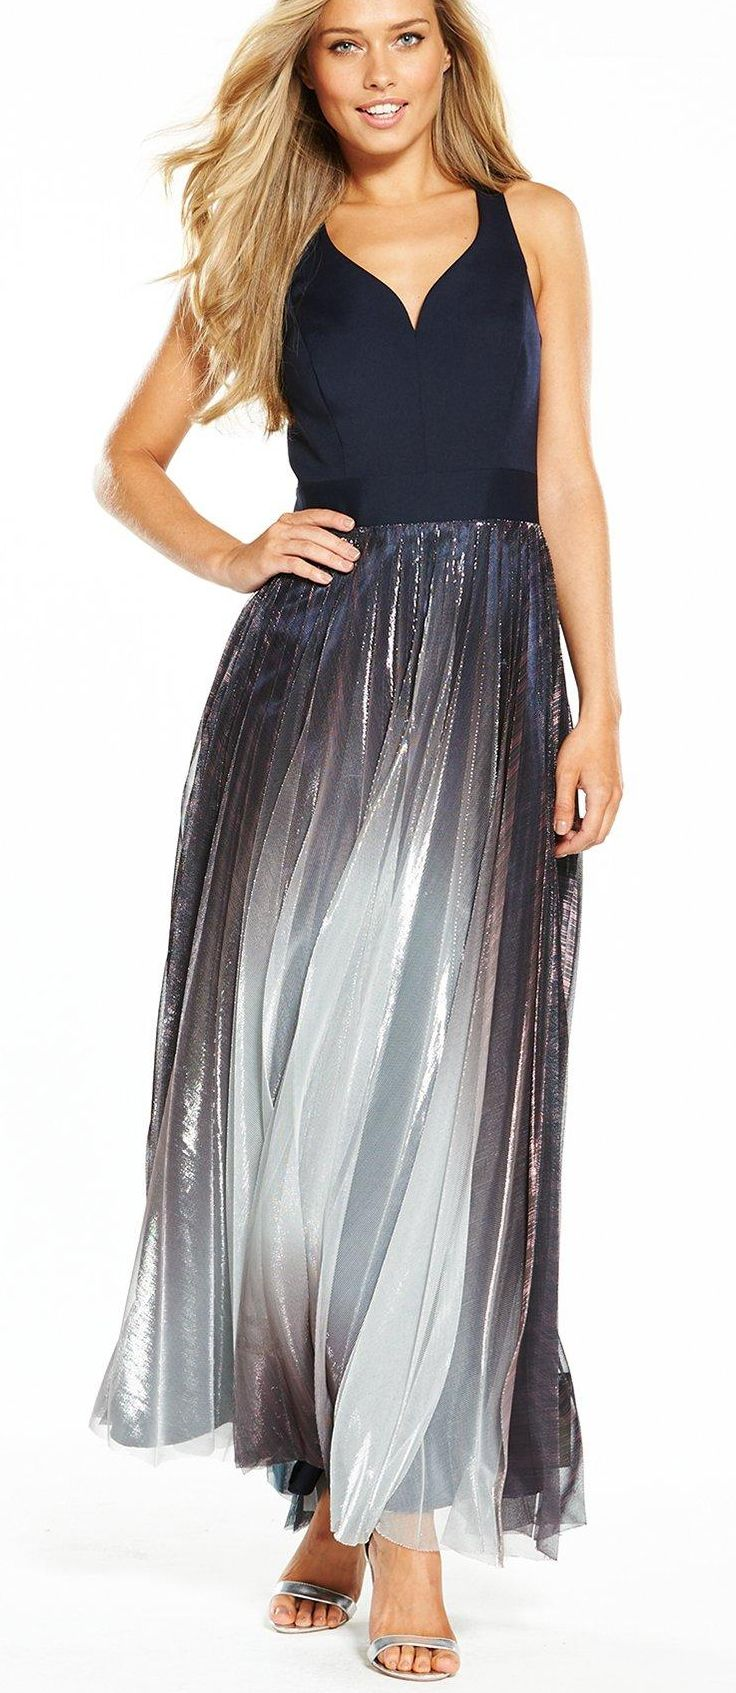 Nacy roma maxi dress with matallic pleats skirt from coast great as